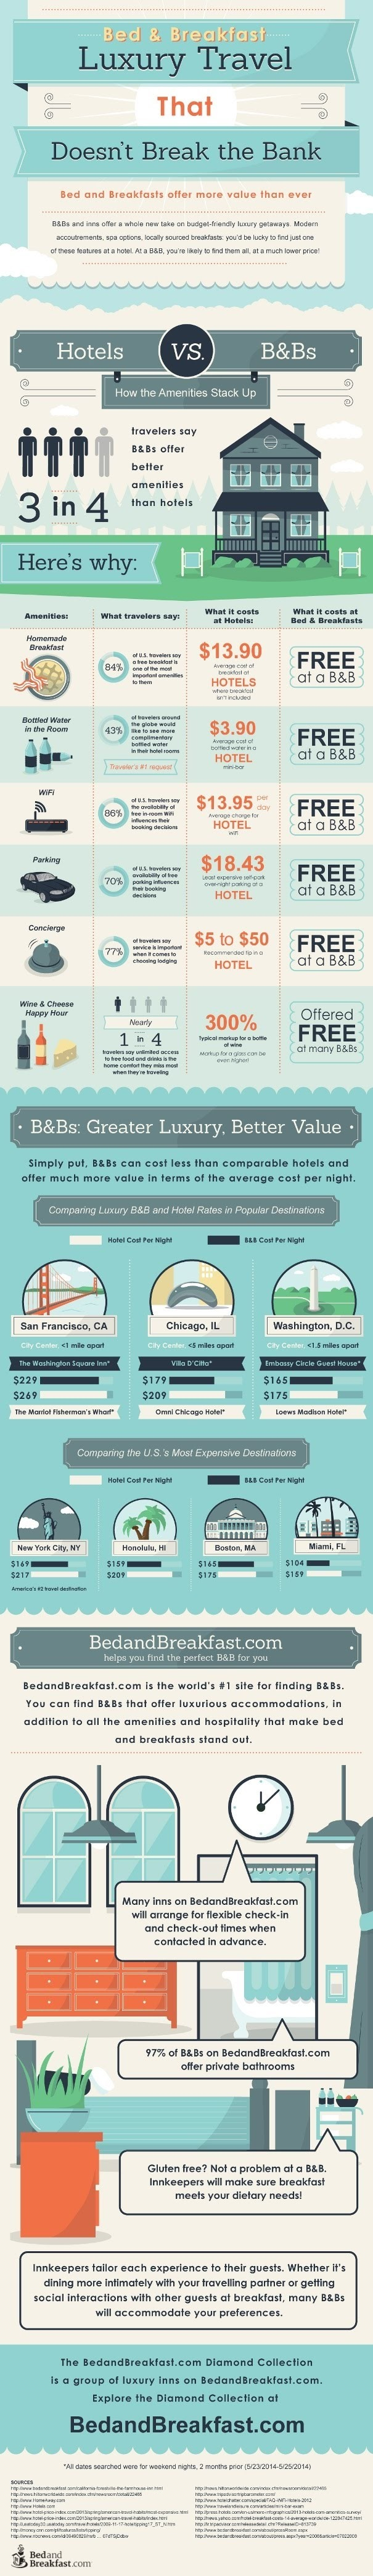 Hotels vs bed and breakfasts #infographic